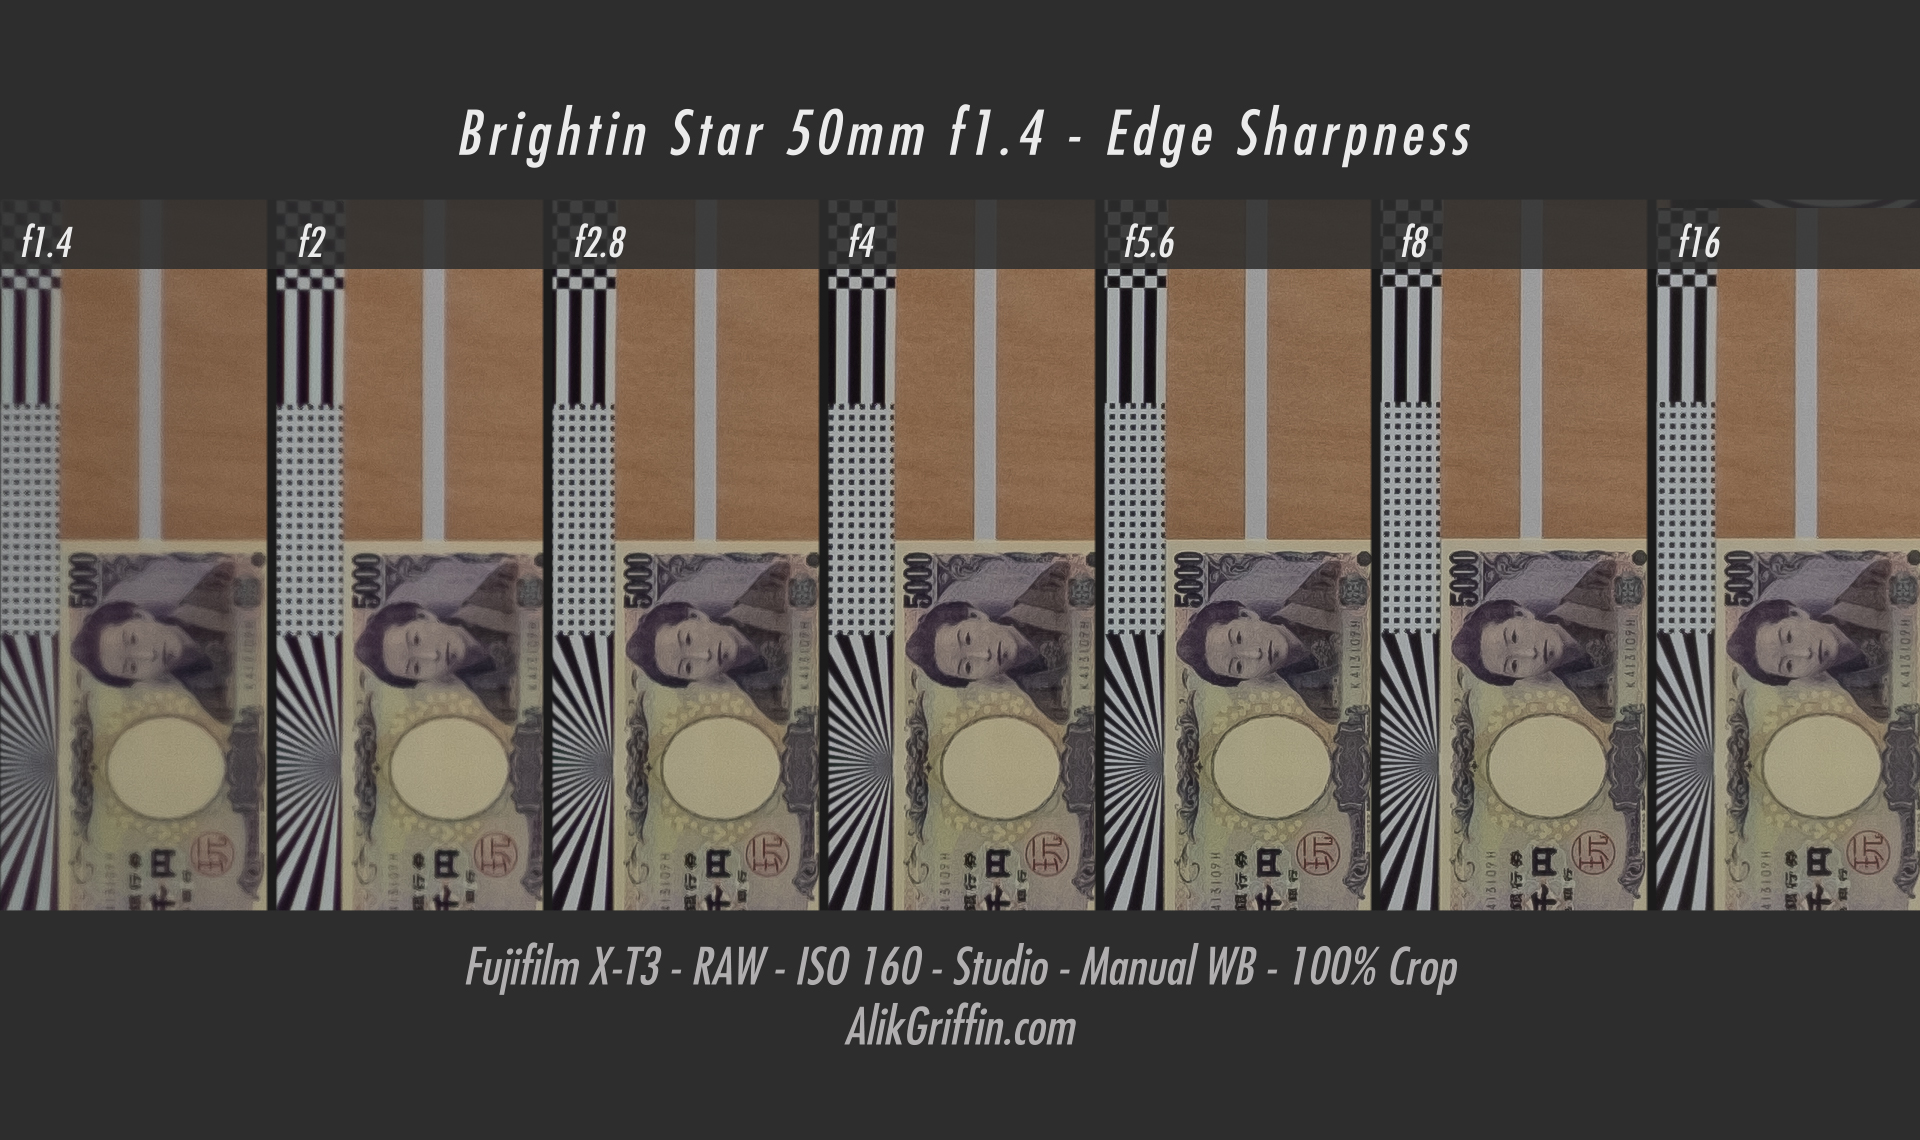 Brightin Star 50mm f1.4 Edge Sharpness Chart